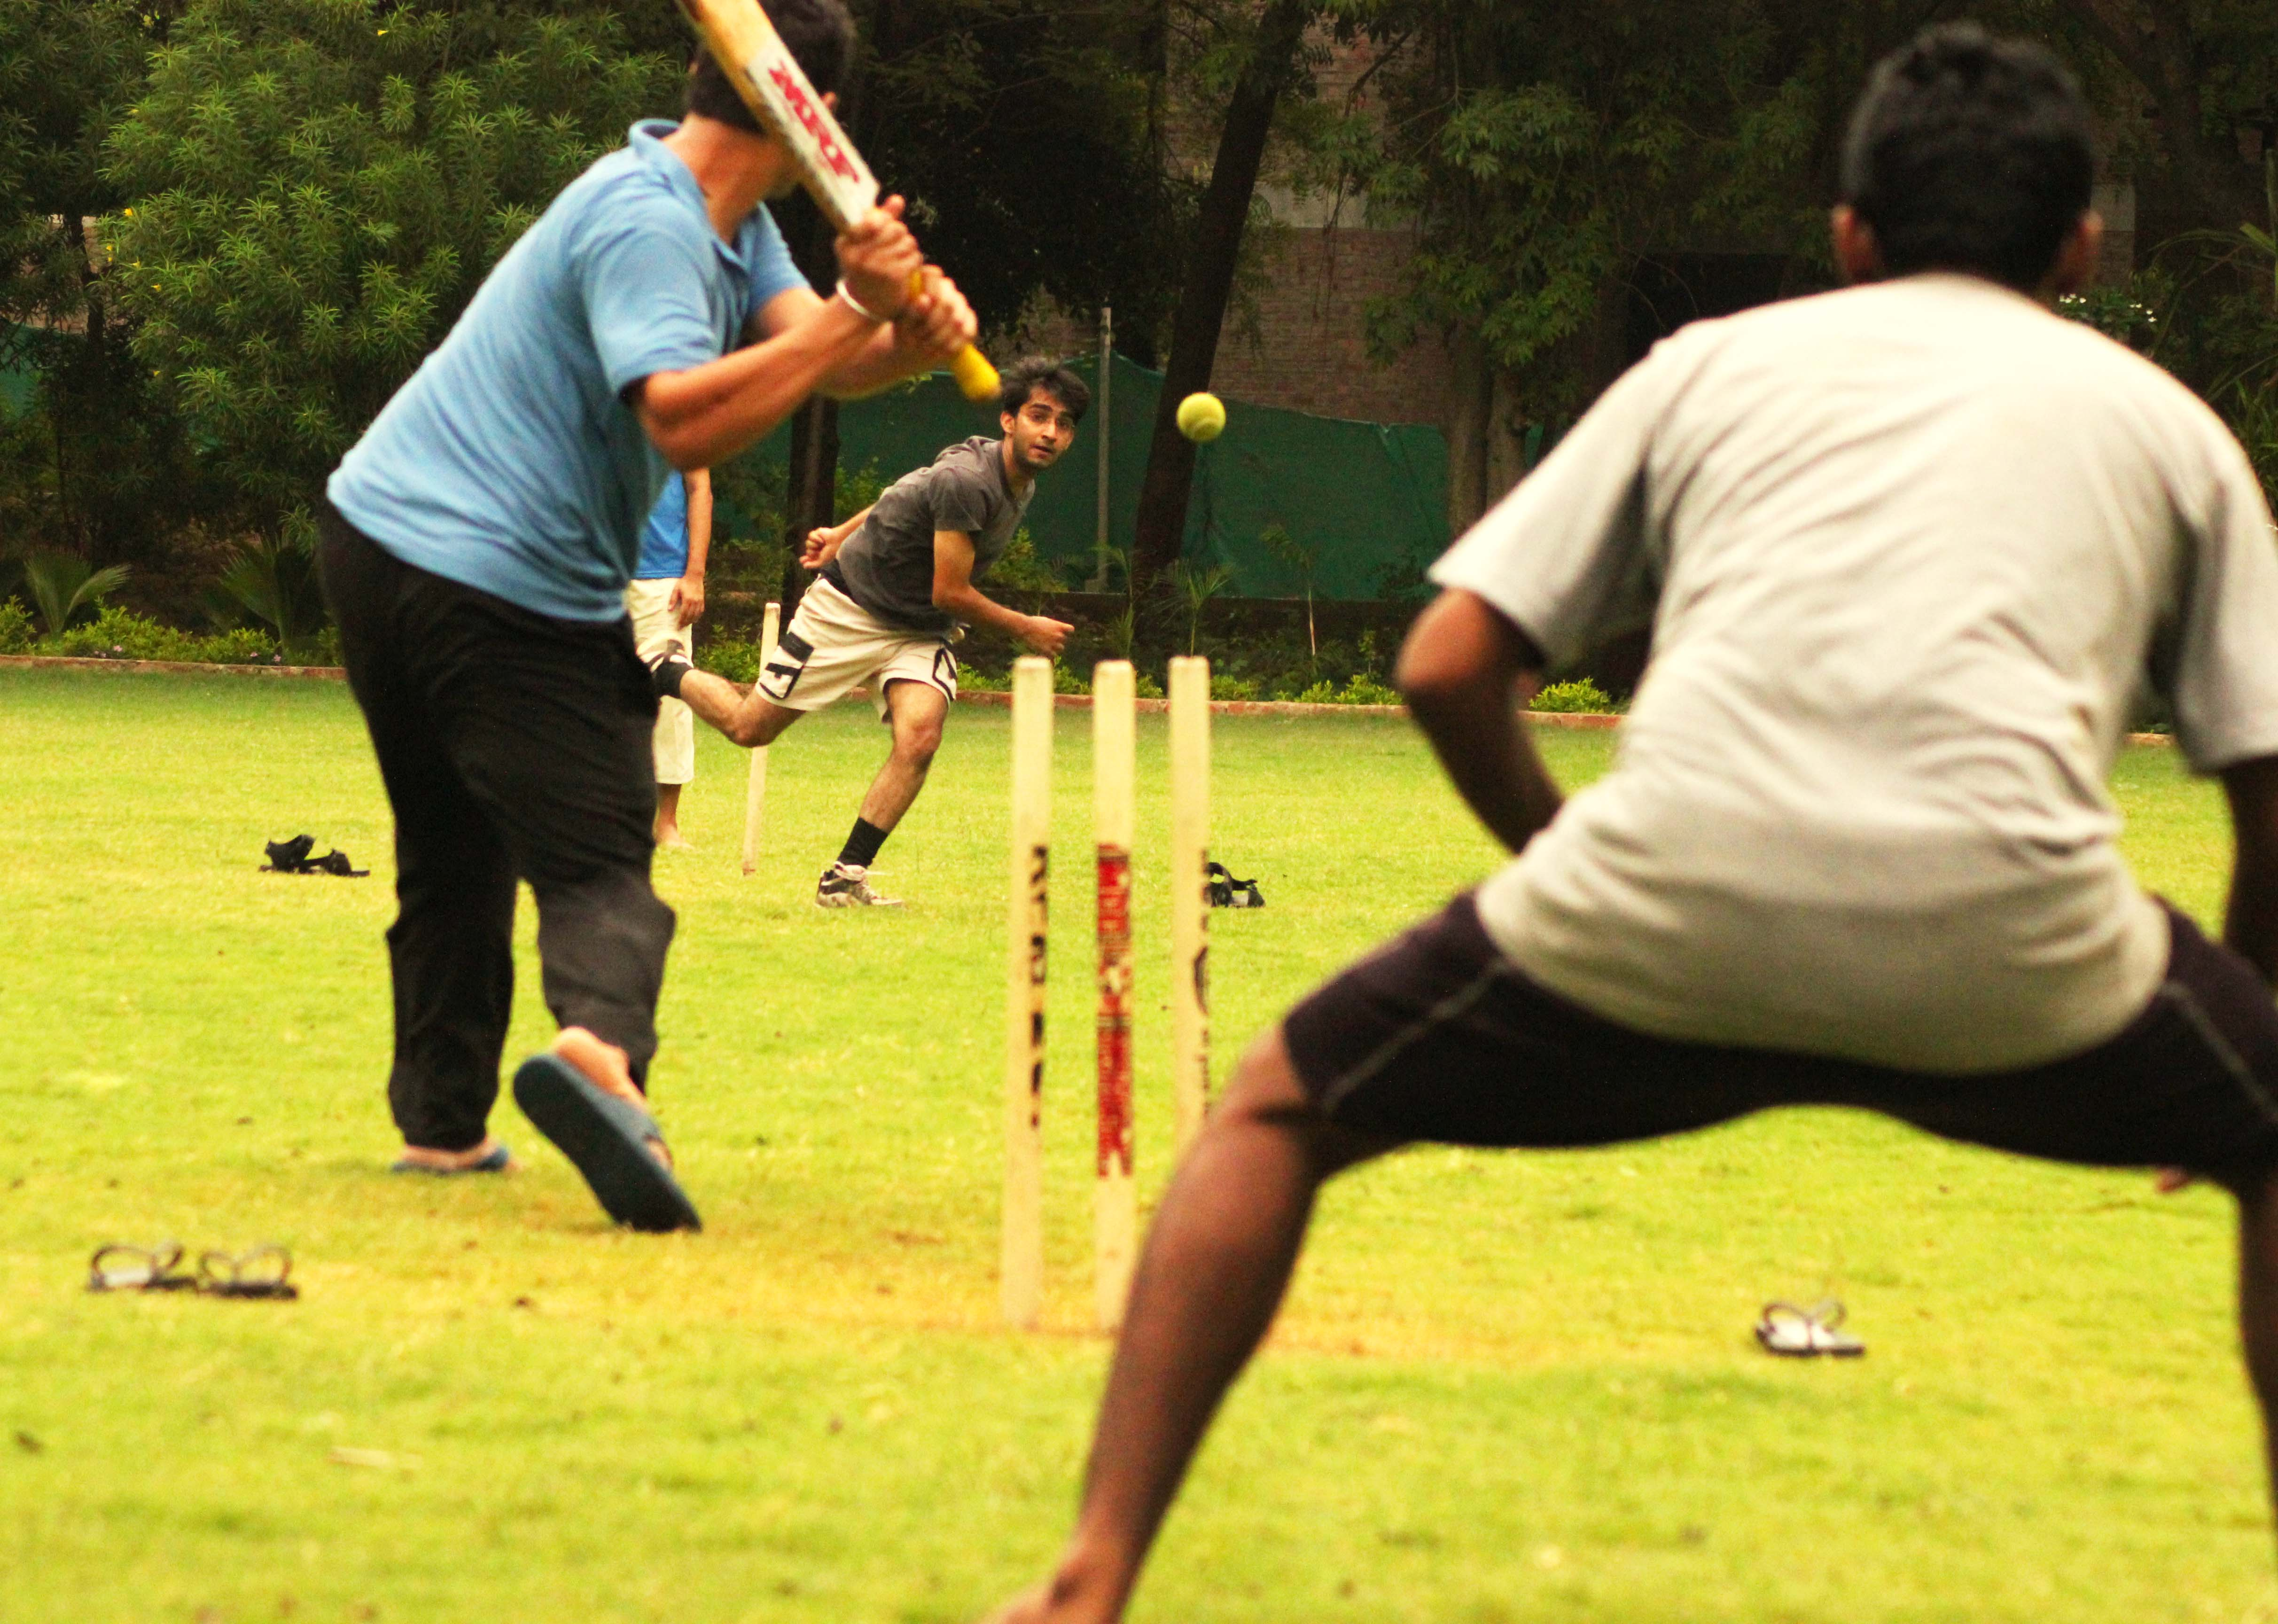 Cricket in india wikipedia domestic cricket competition league listedit nvjuhfo Image collections